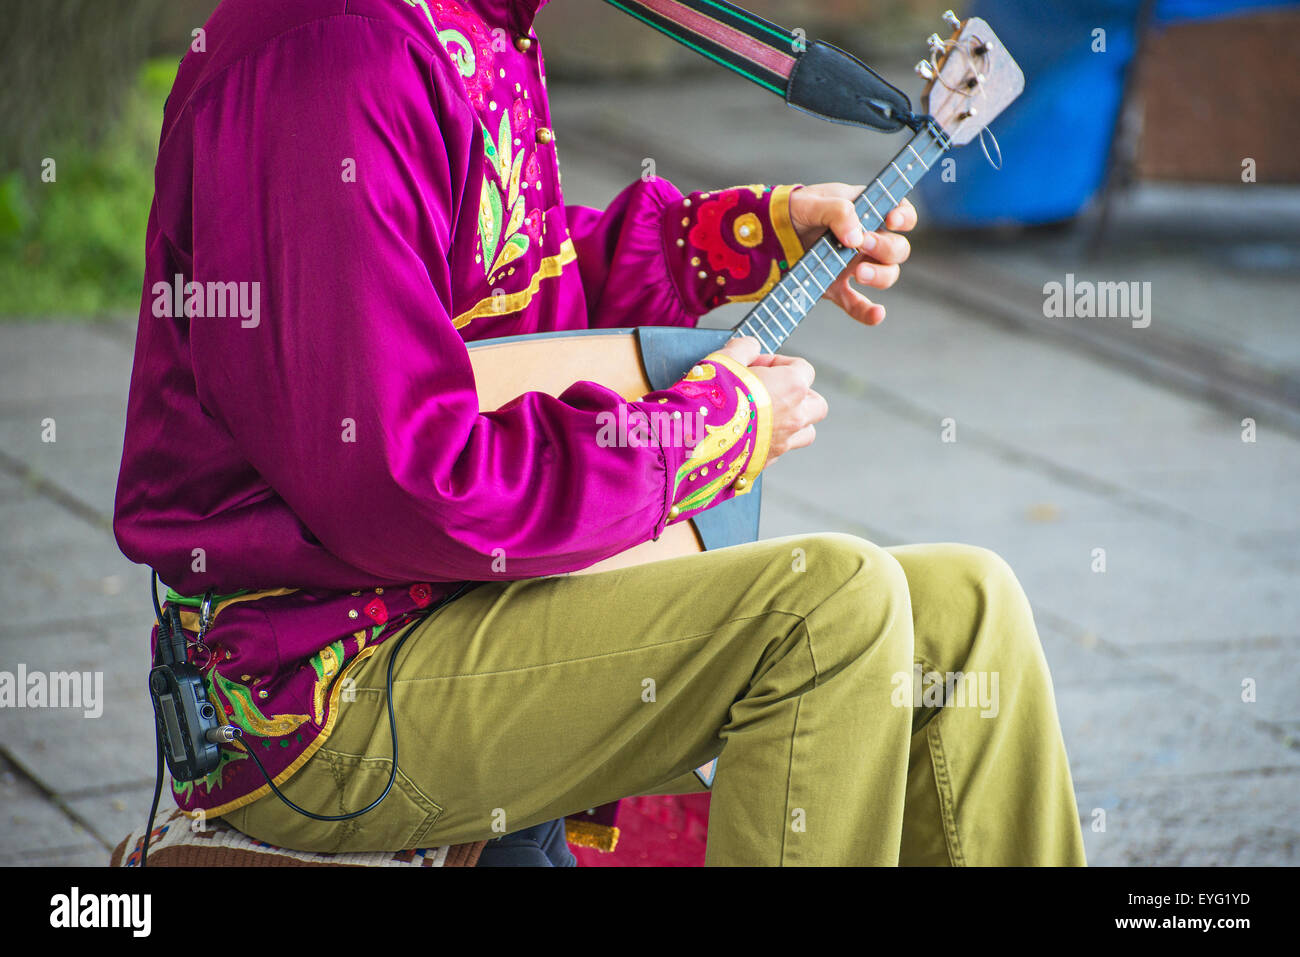 Man playing balalaika on the street. Unrecognizable person. - Stock Image